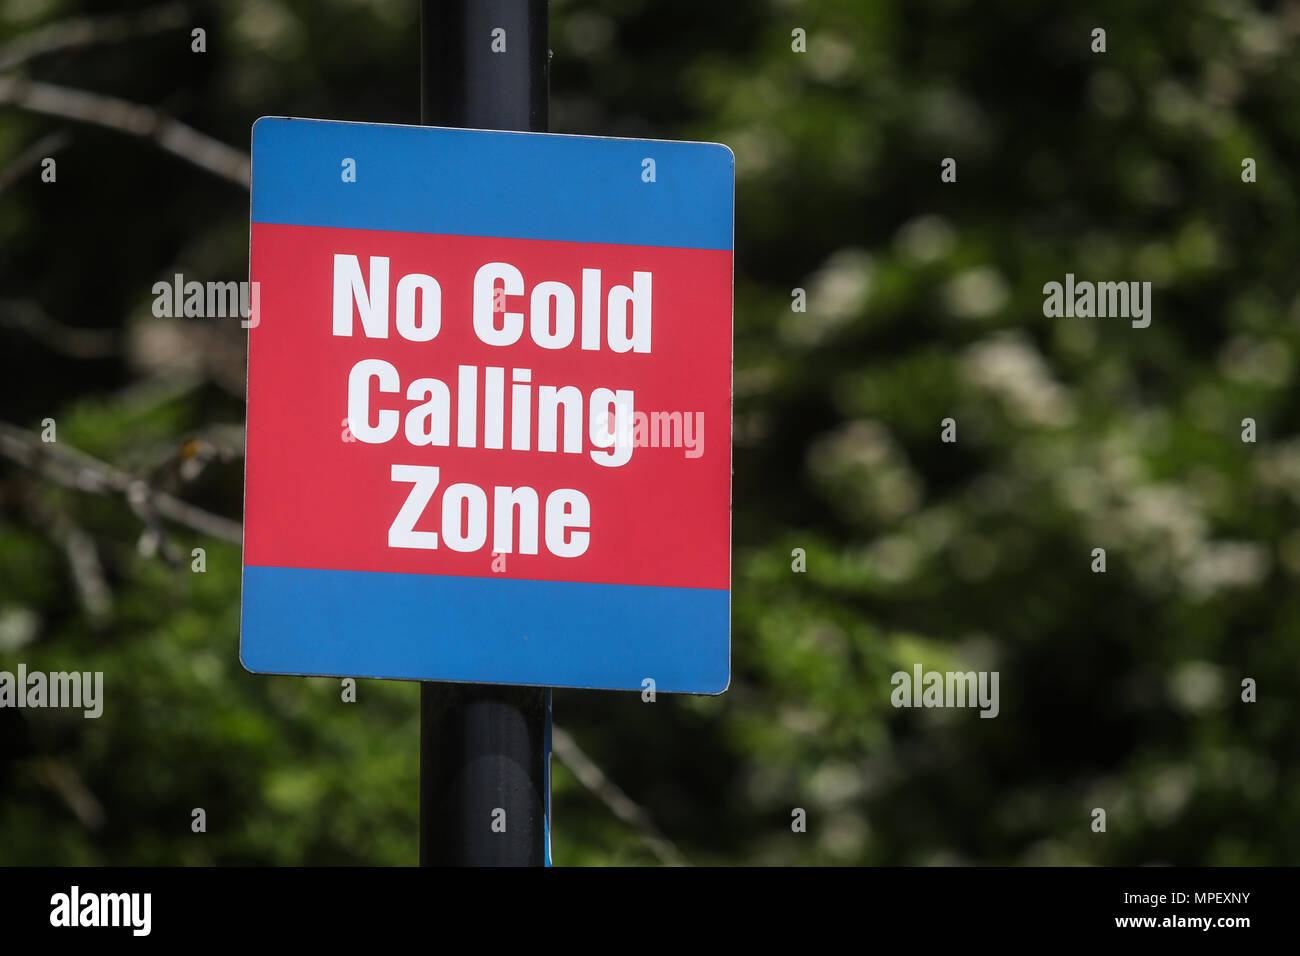 No Cold Calling sign in a residential area - Stock Image